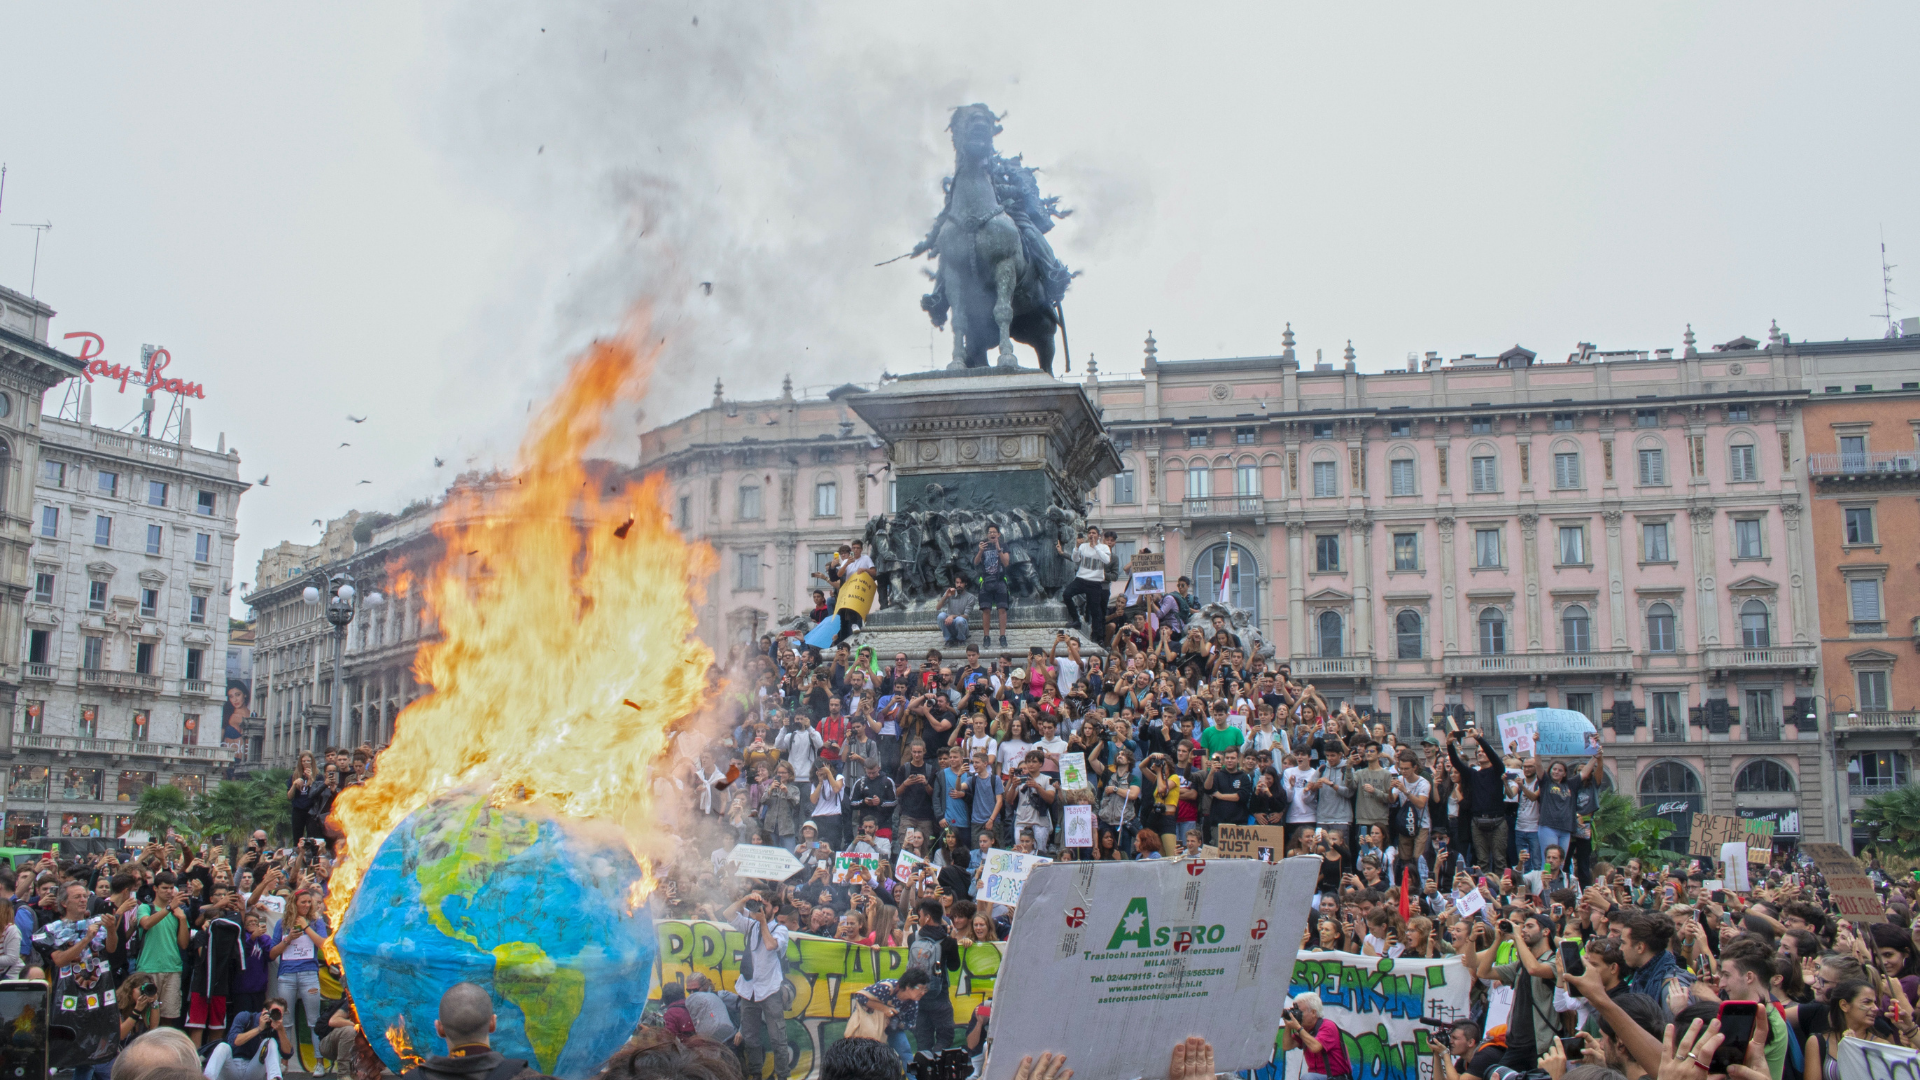 people gathered at climate protest with globe on fire